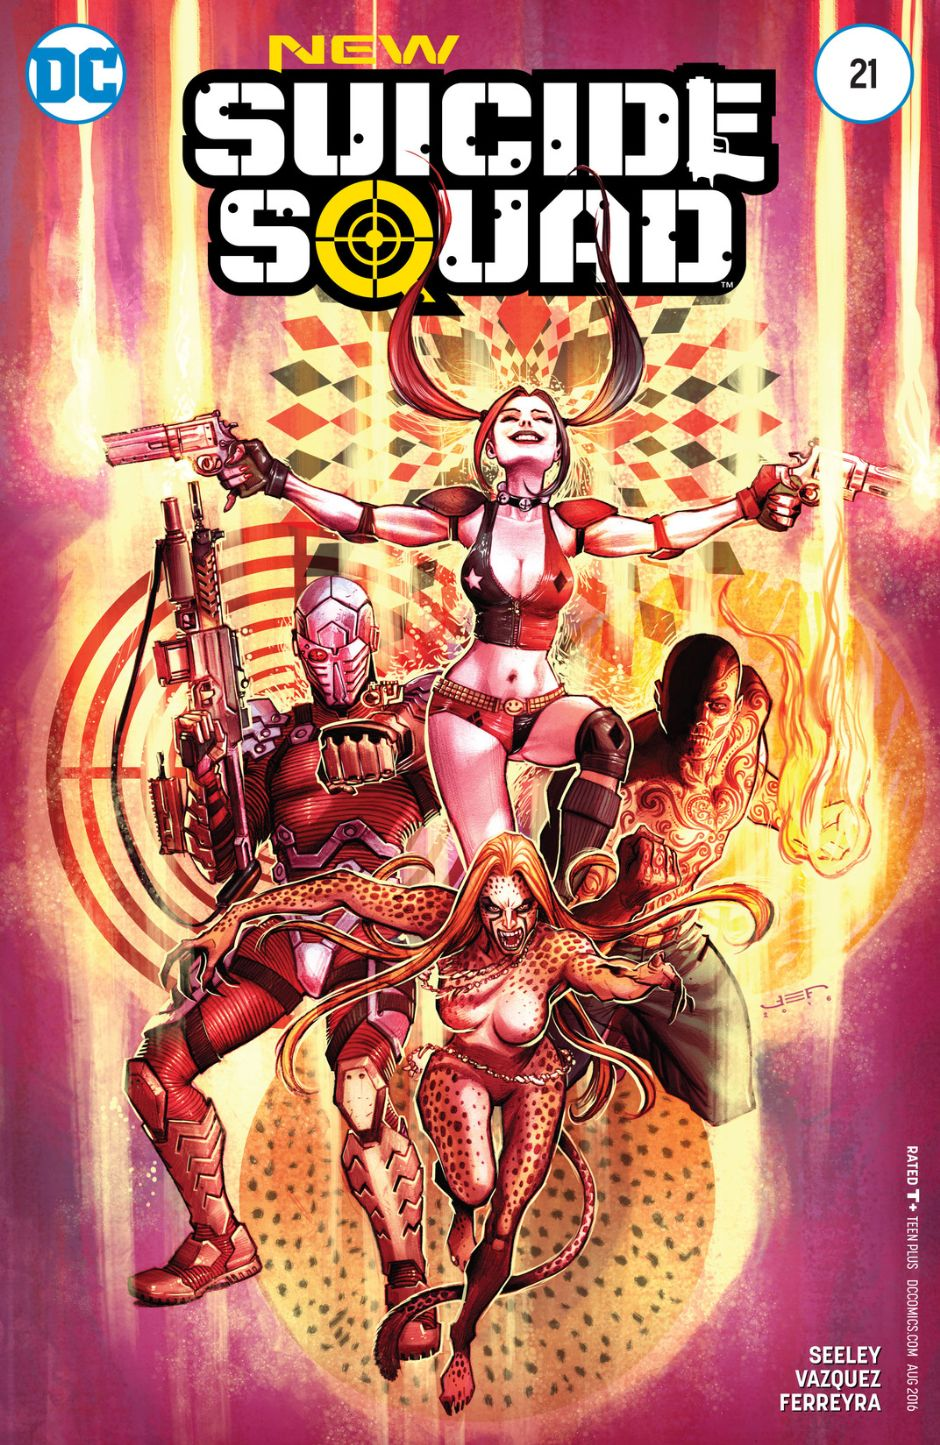 New Suicide Squad Vol 1 21